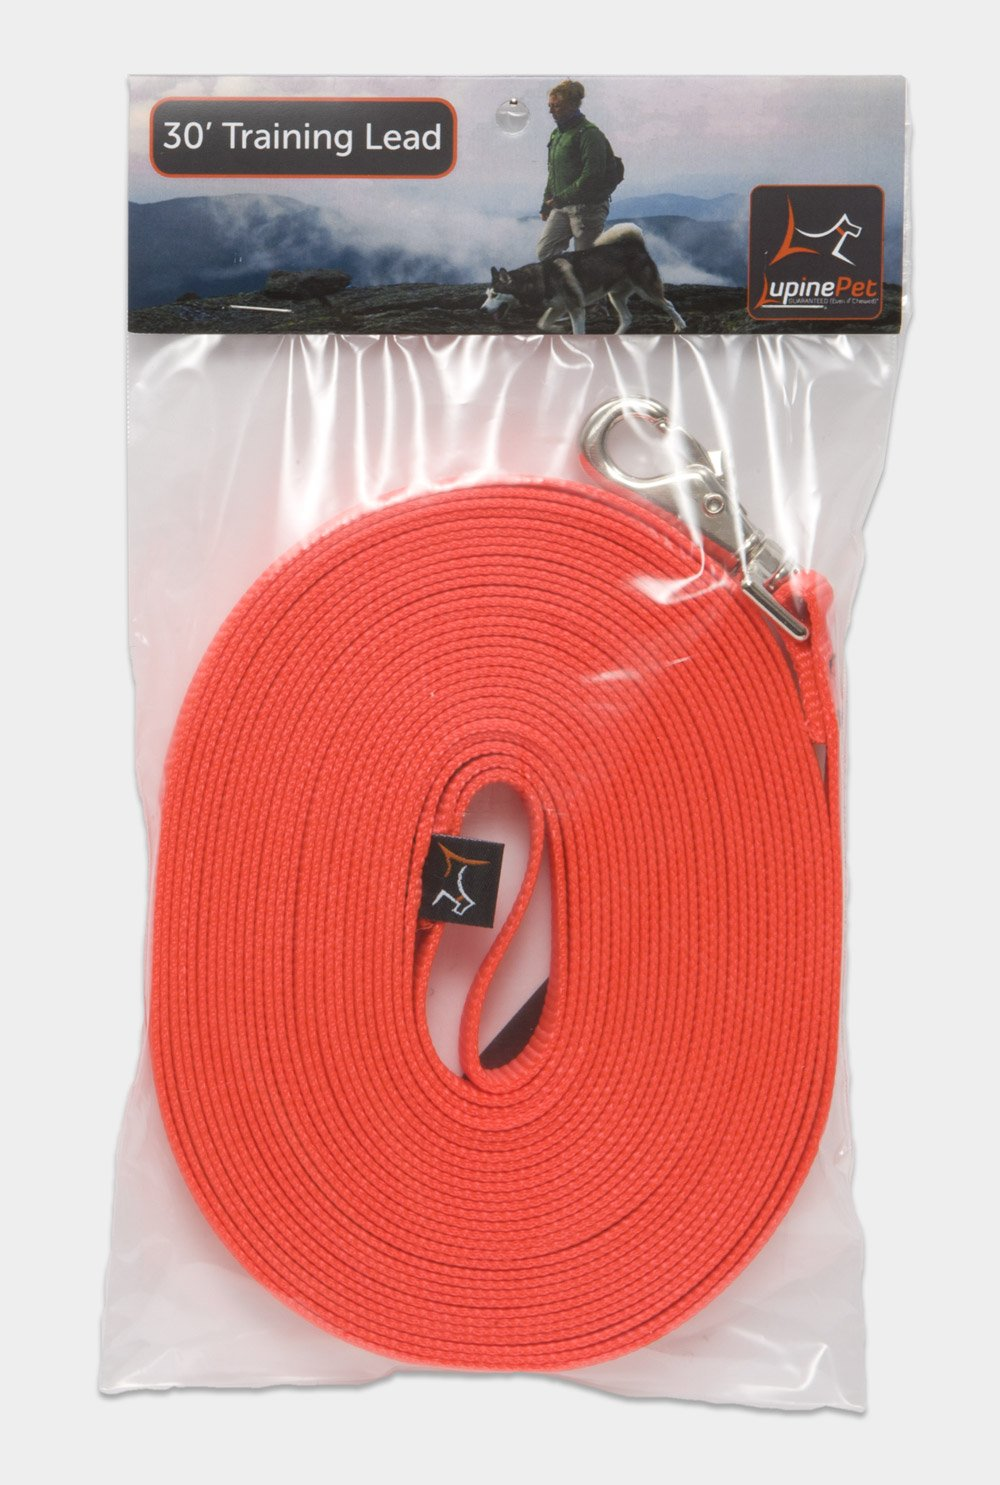 LupinePet Basics 3/4'' Blaze Orange 30-foot Extra-Long Training Lead/Leash for Medium and Larger Dogs